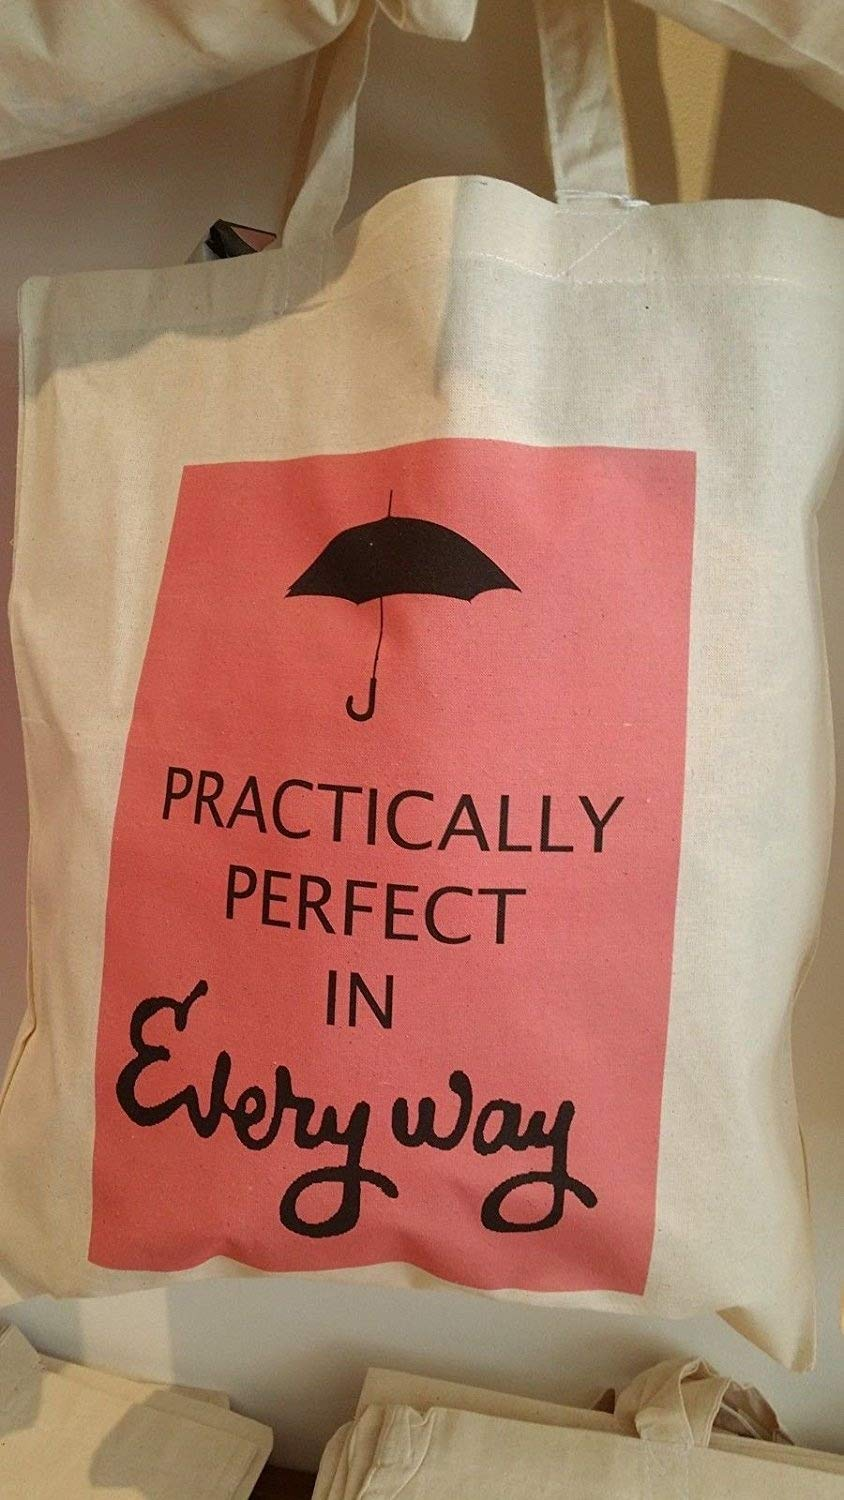 Borsa Tote libro in cotone  –   Mary Poppins film Book quote: Practically Perfect in Every Way  –   New ReallyFabCards Ltd